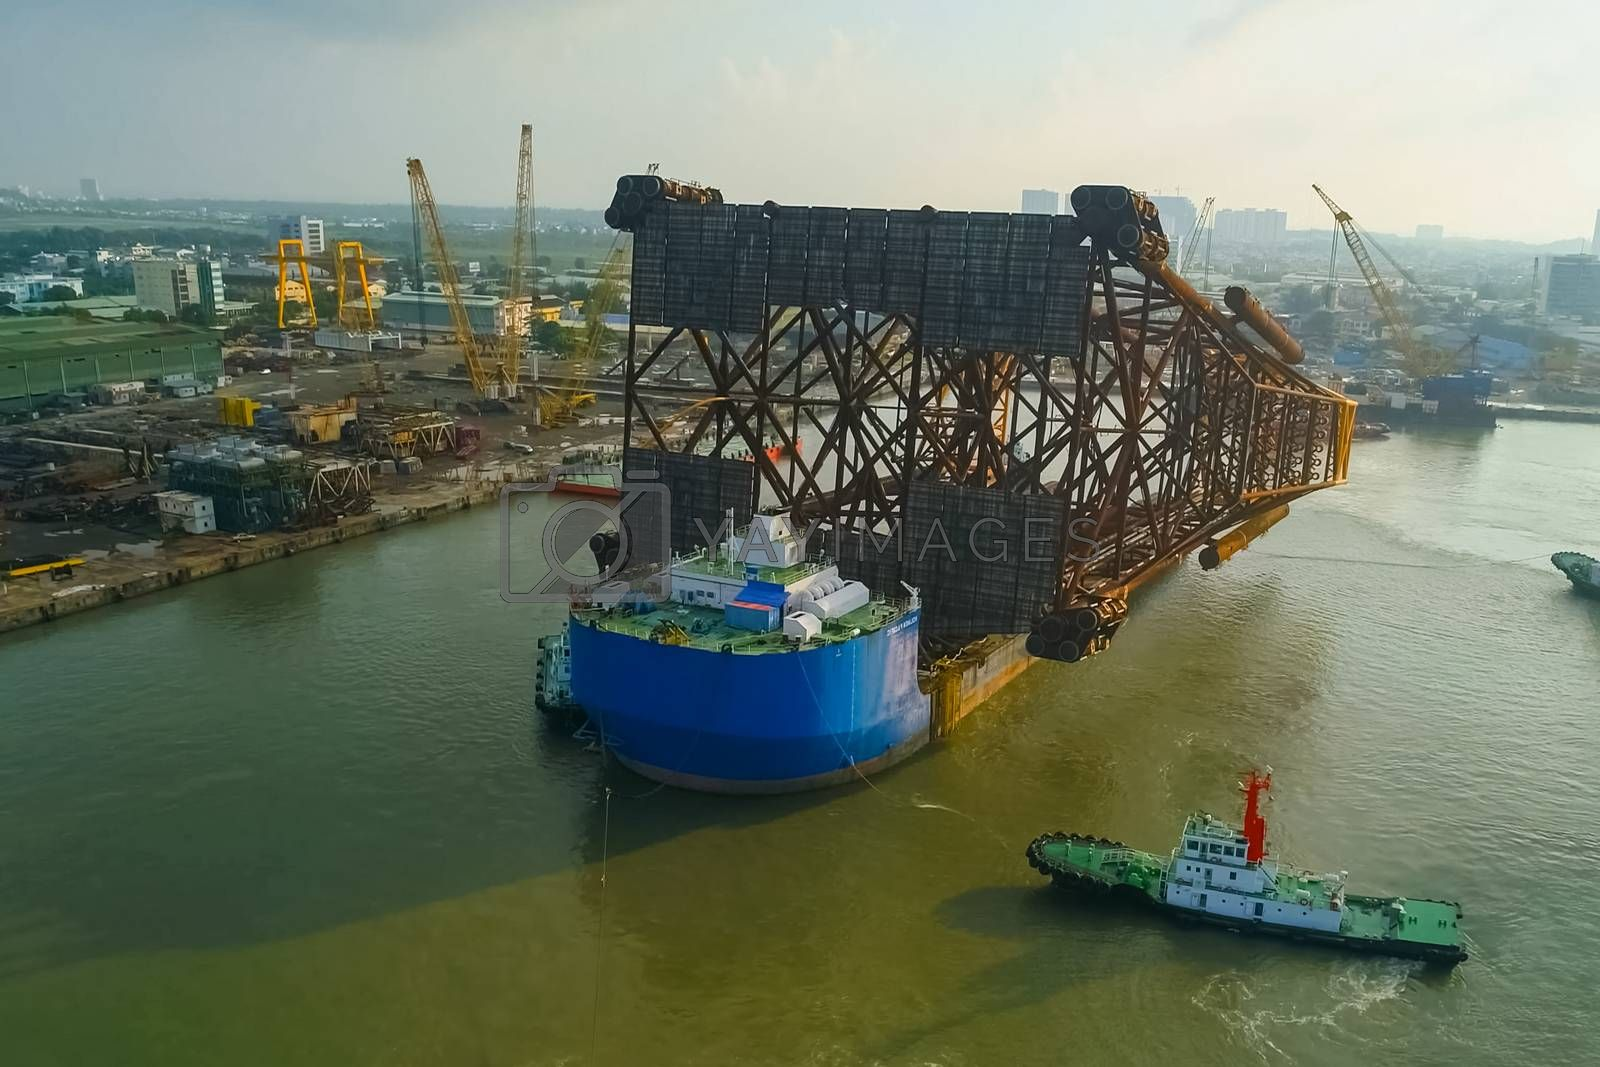 Moving and transporting the supports of the oil platform.